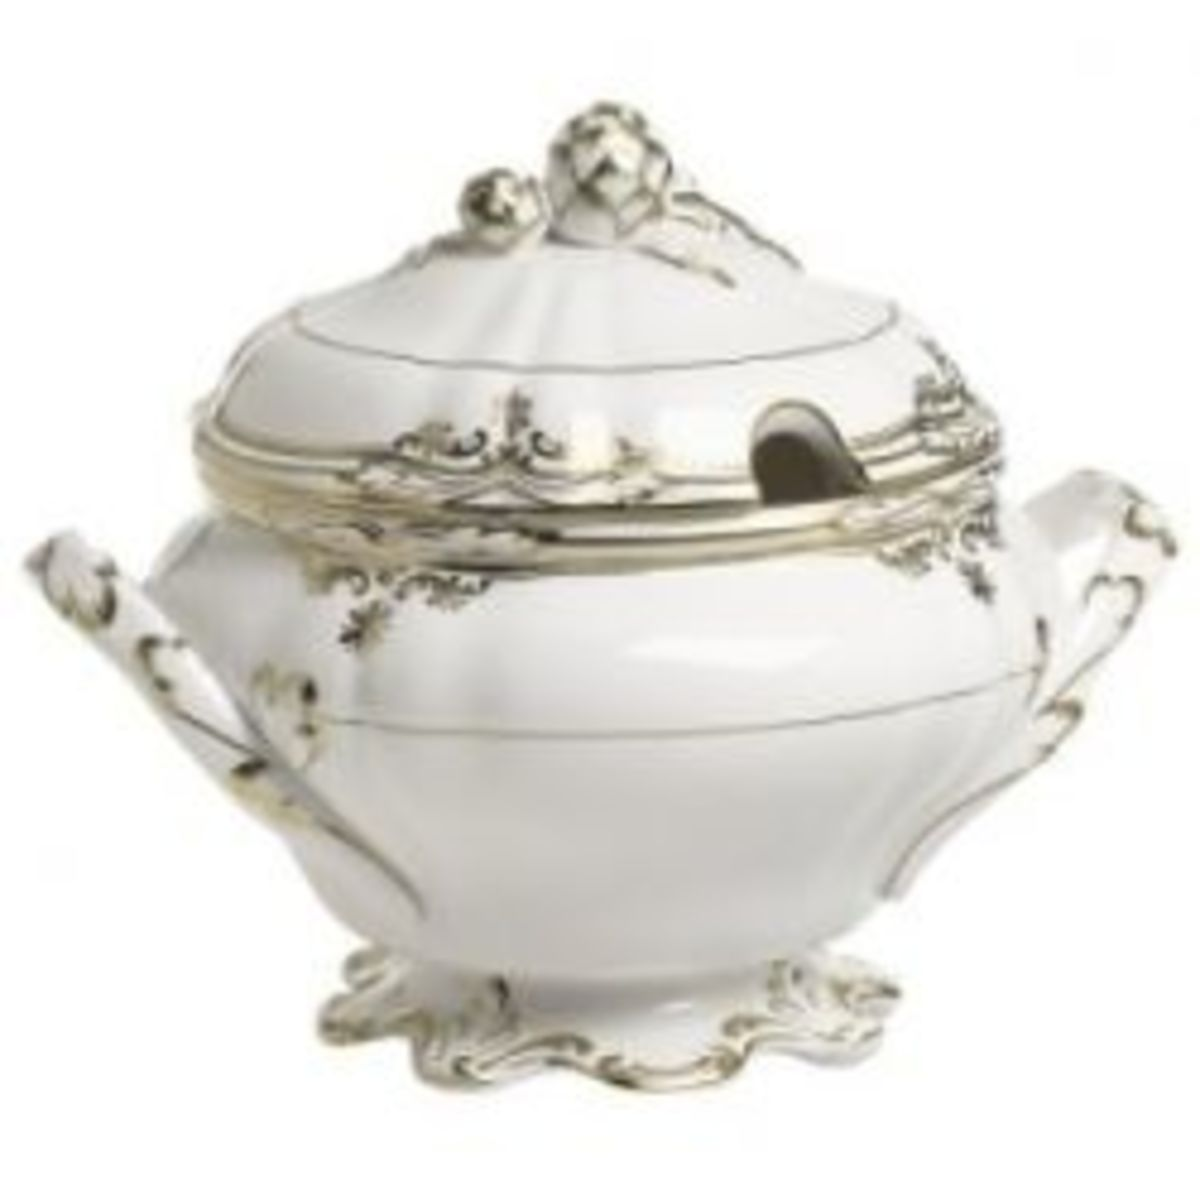 Soup Tureens For Gracious Living